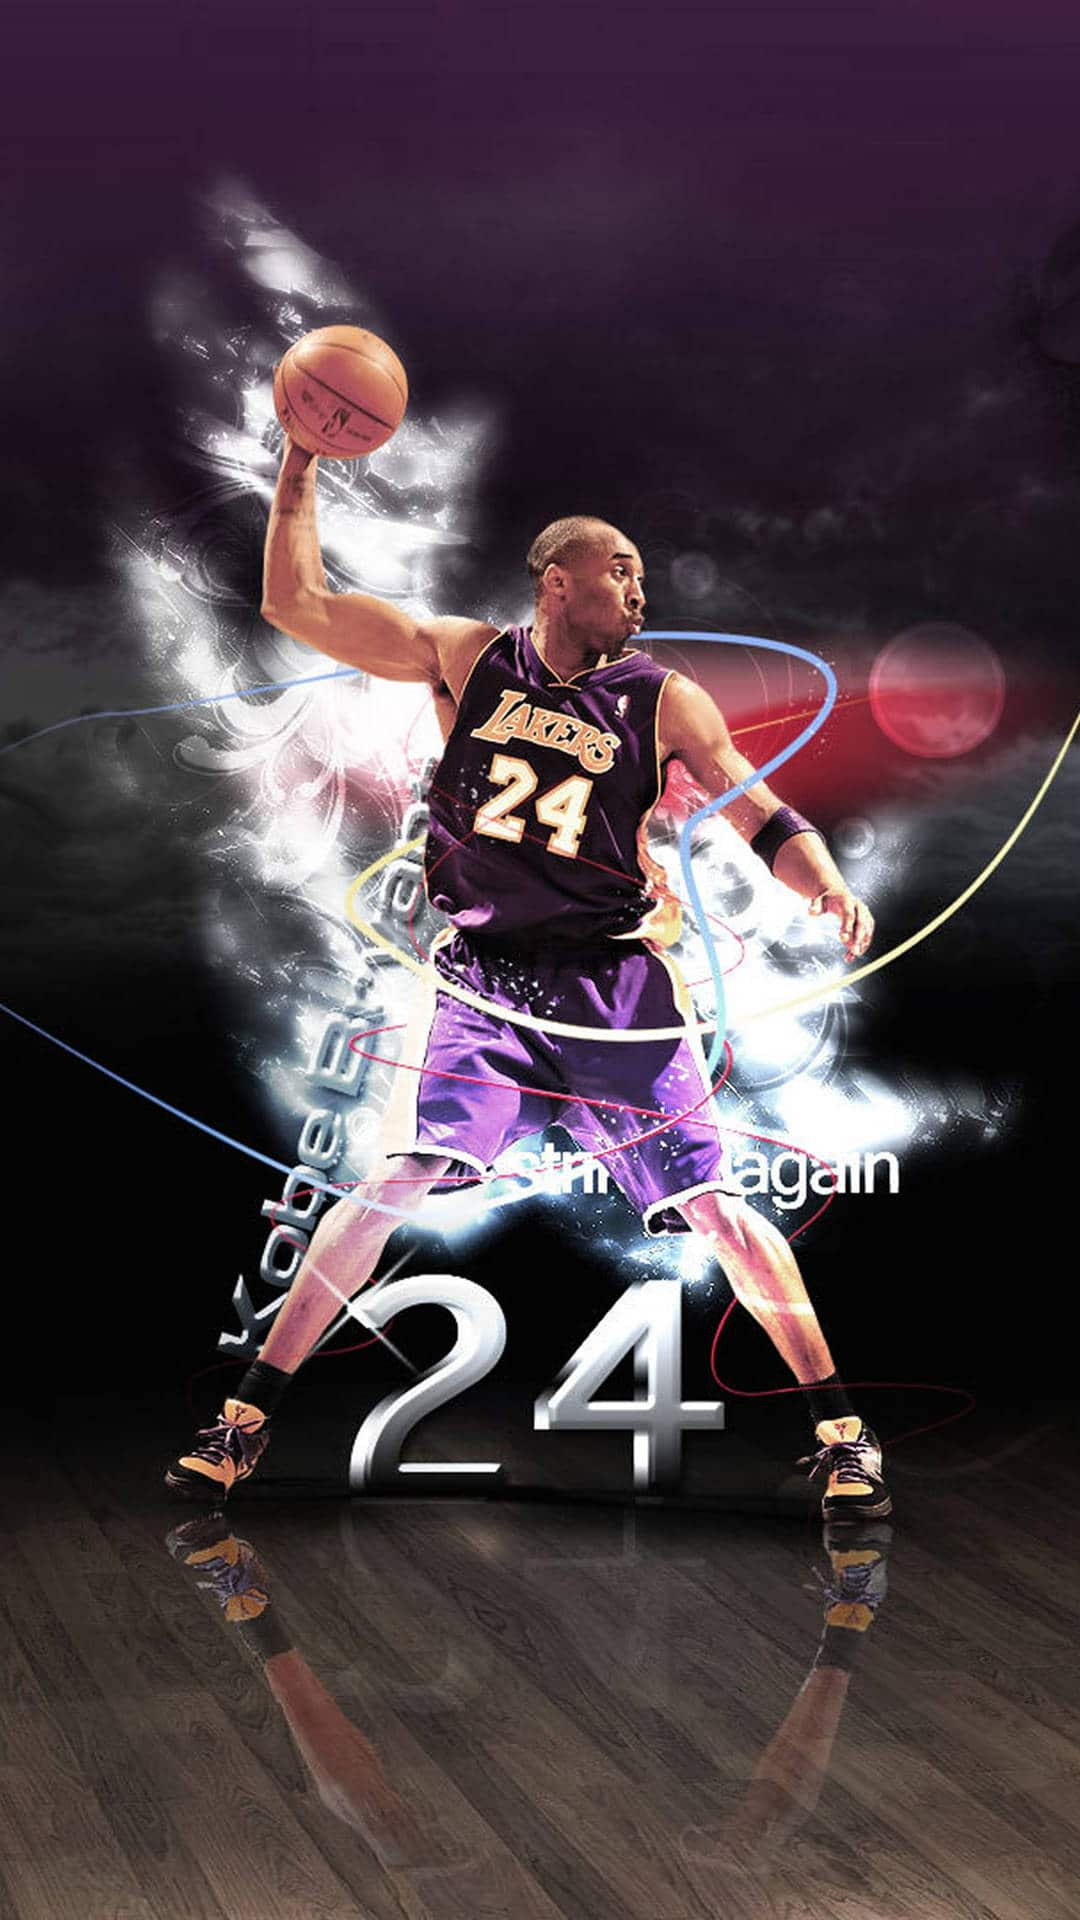 Best Nba Wallpapers Hd 30 Kobe Bryant Wallpapers Hd For Iphone 2016 Apple Lives